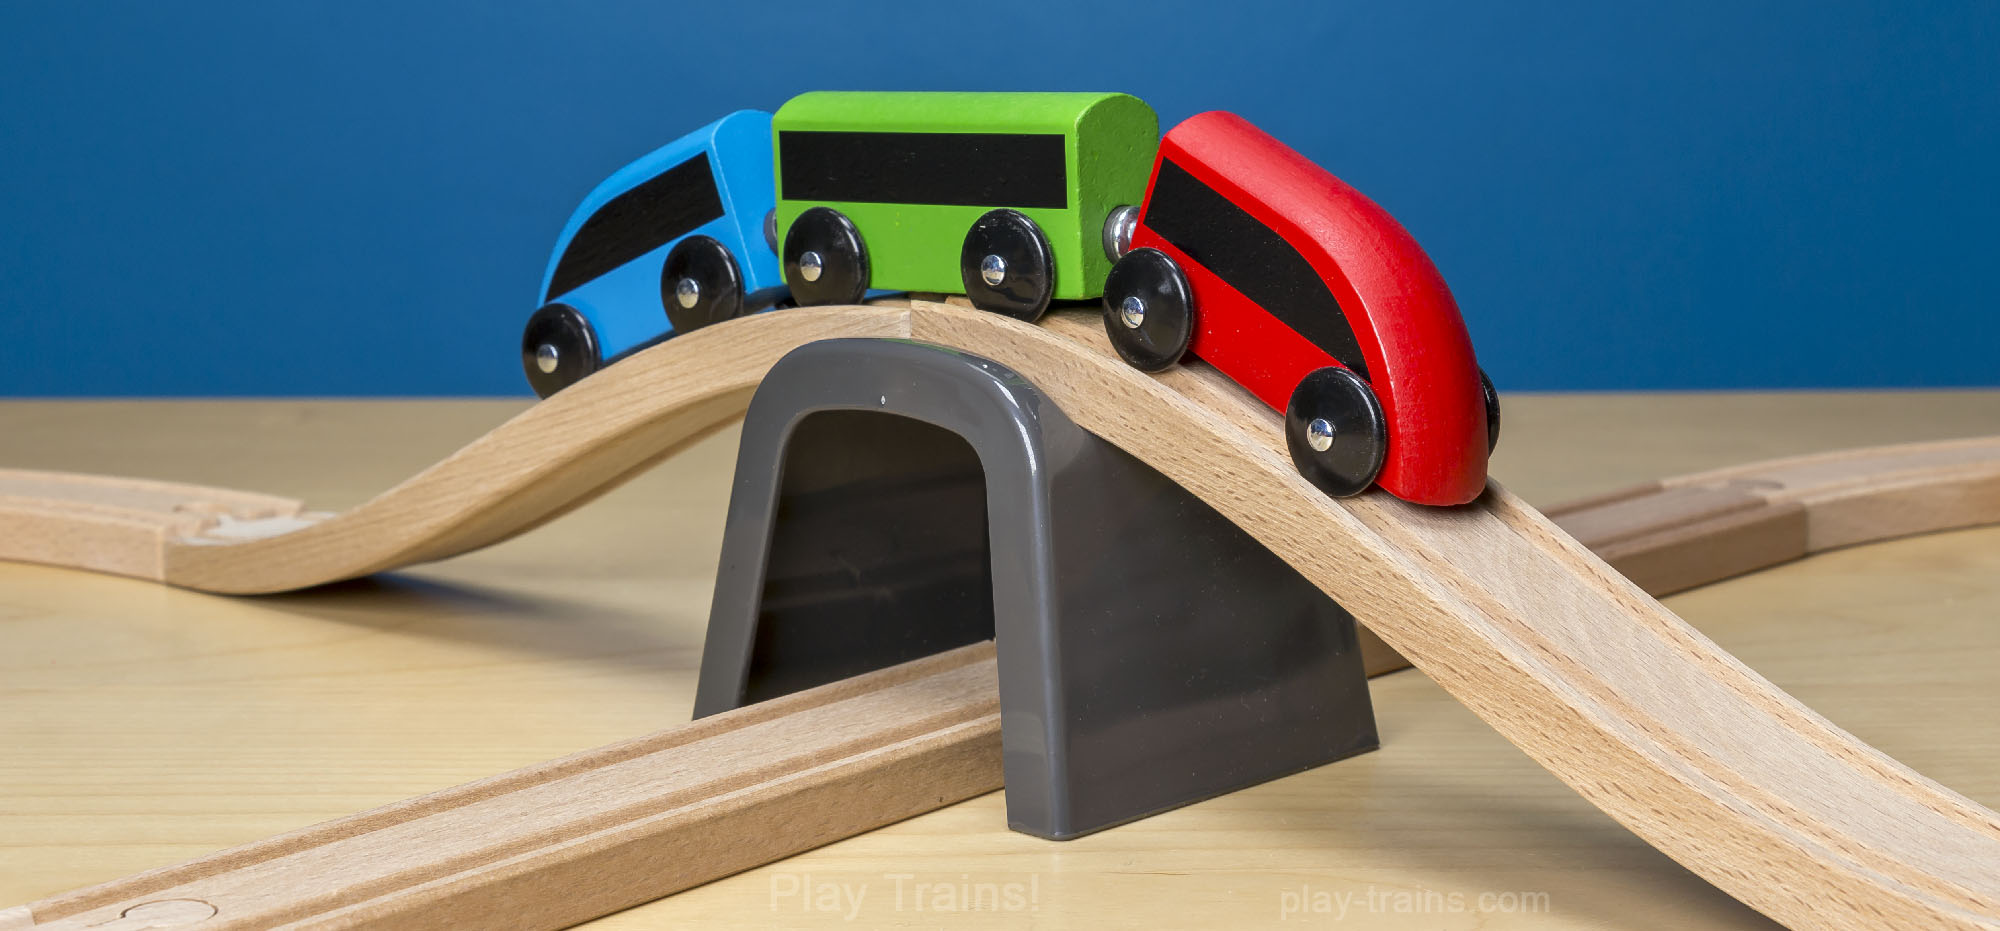 New IKEA Wooden Trains  -- The Play Trains! Guide to Wooden Train Sets: expert advice on the best wooden train set to buy for your little engineer.